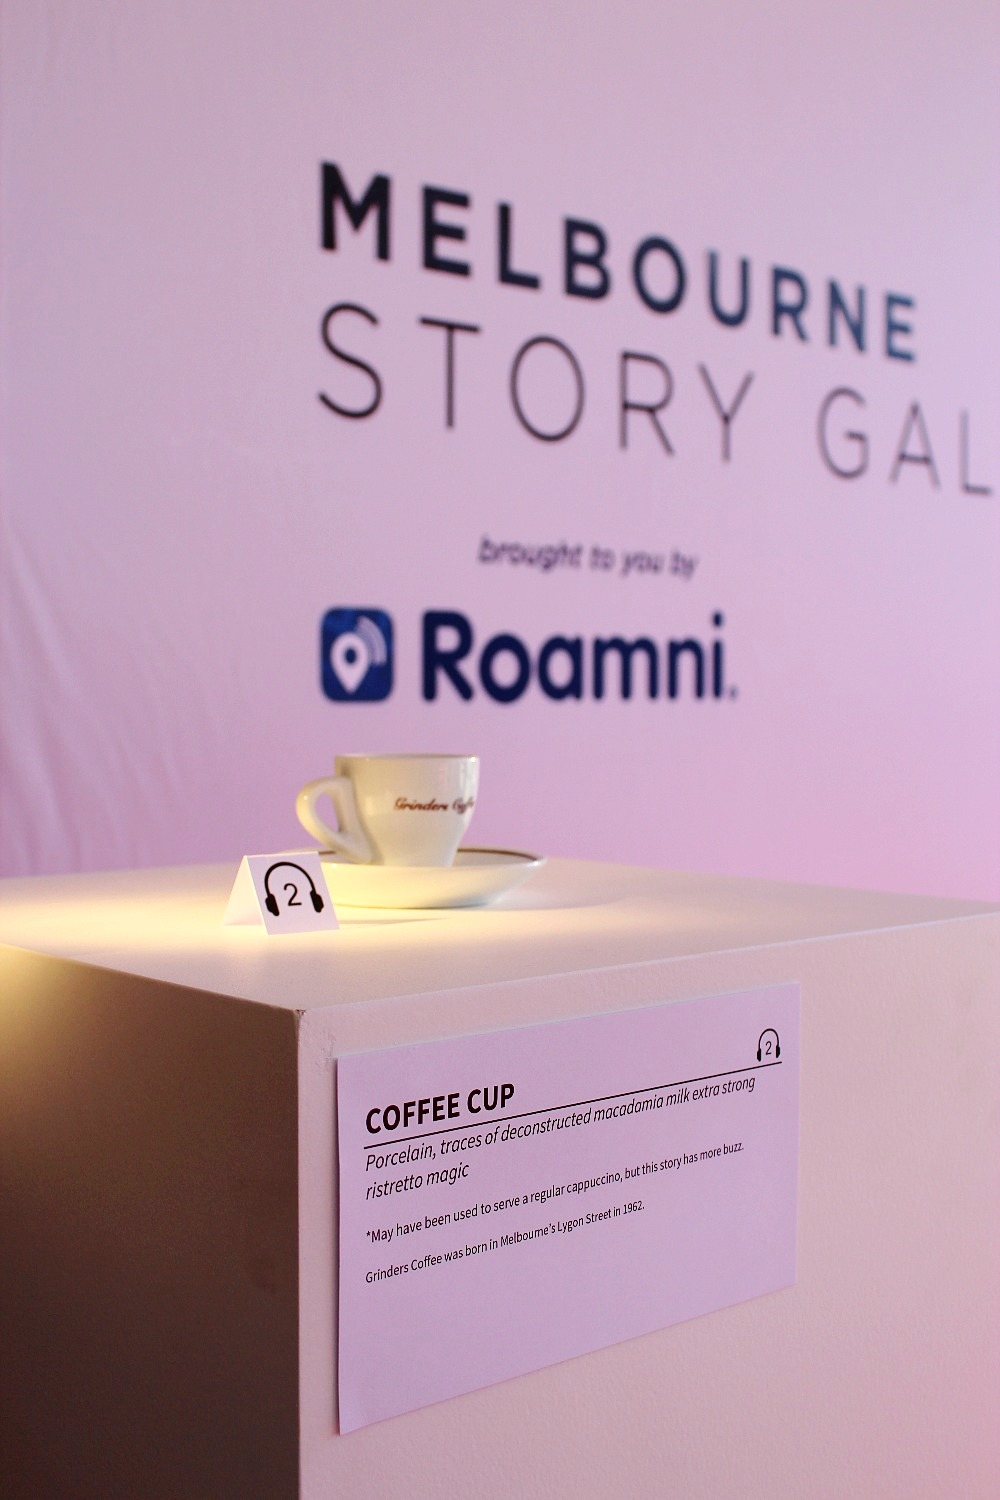 Melbourne Story Gallery